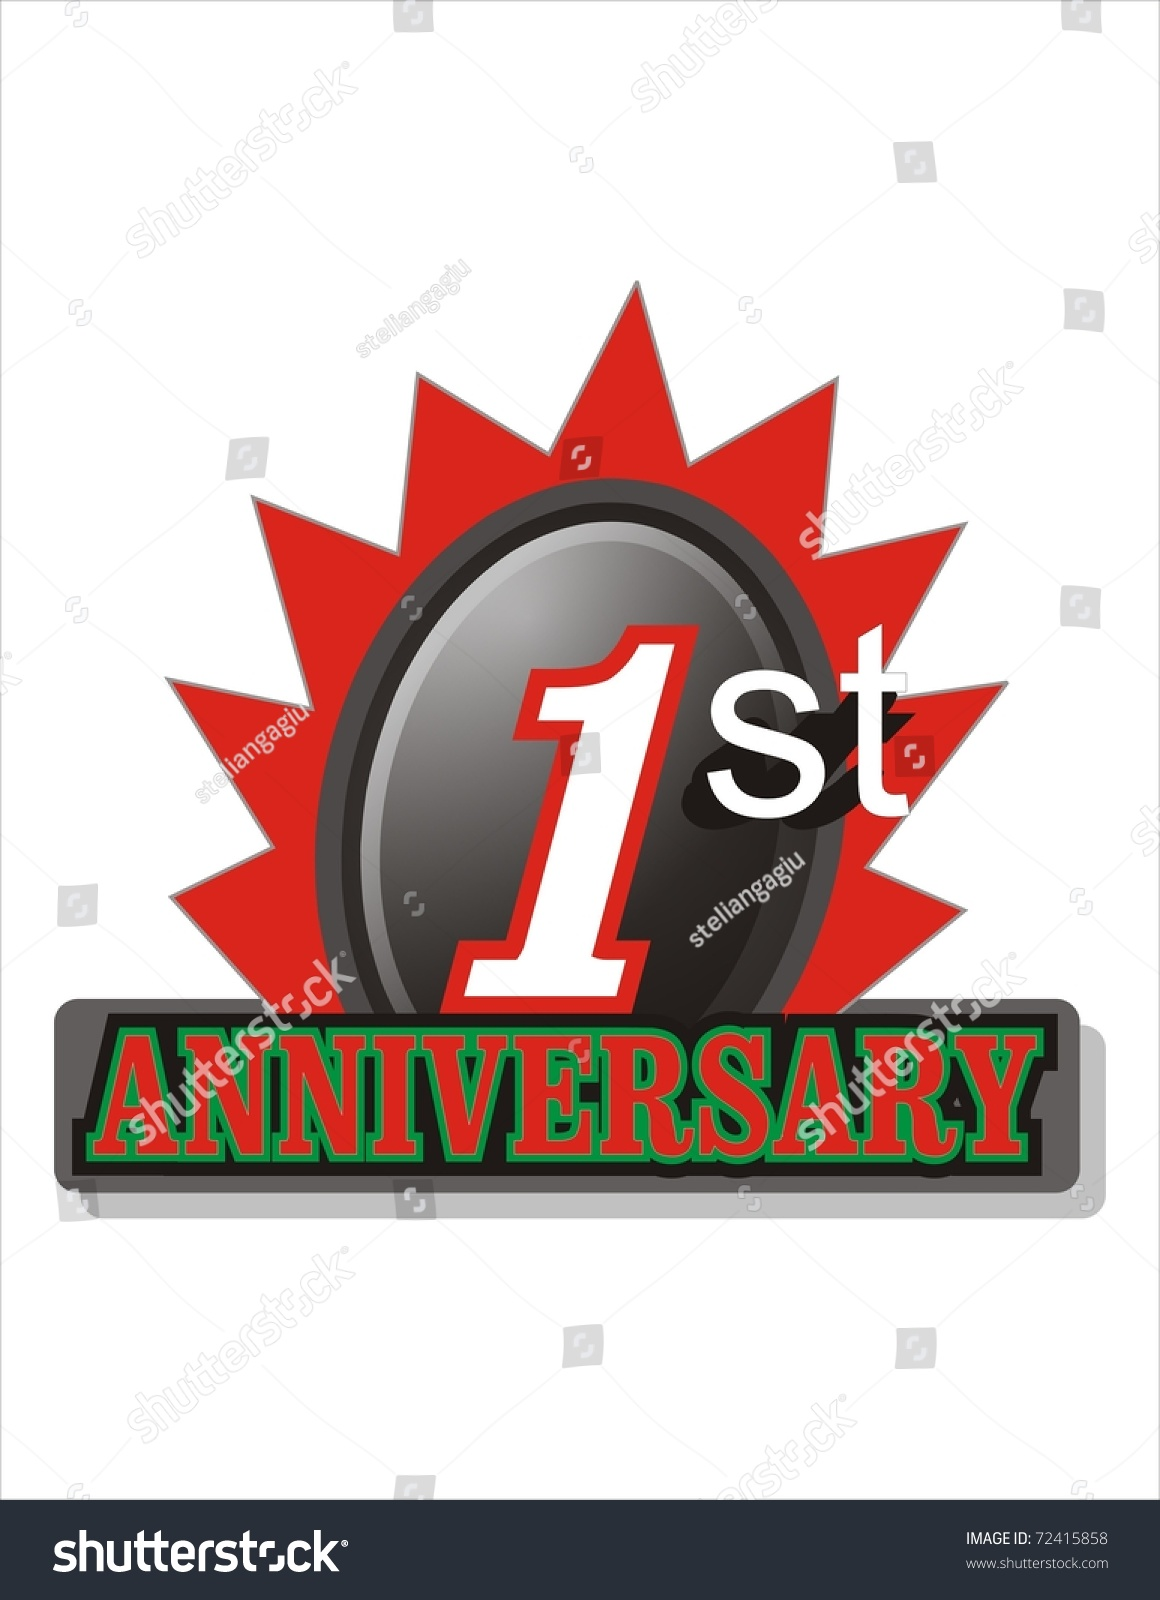 First anniversary logo stock illustration